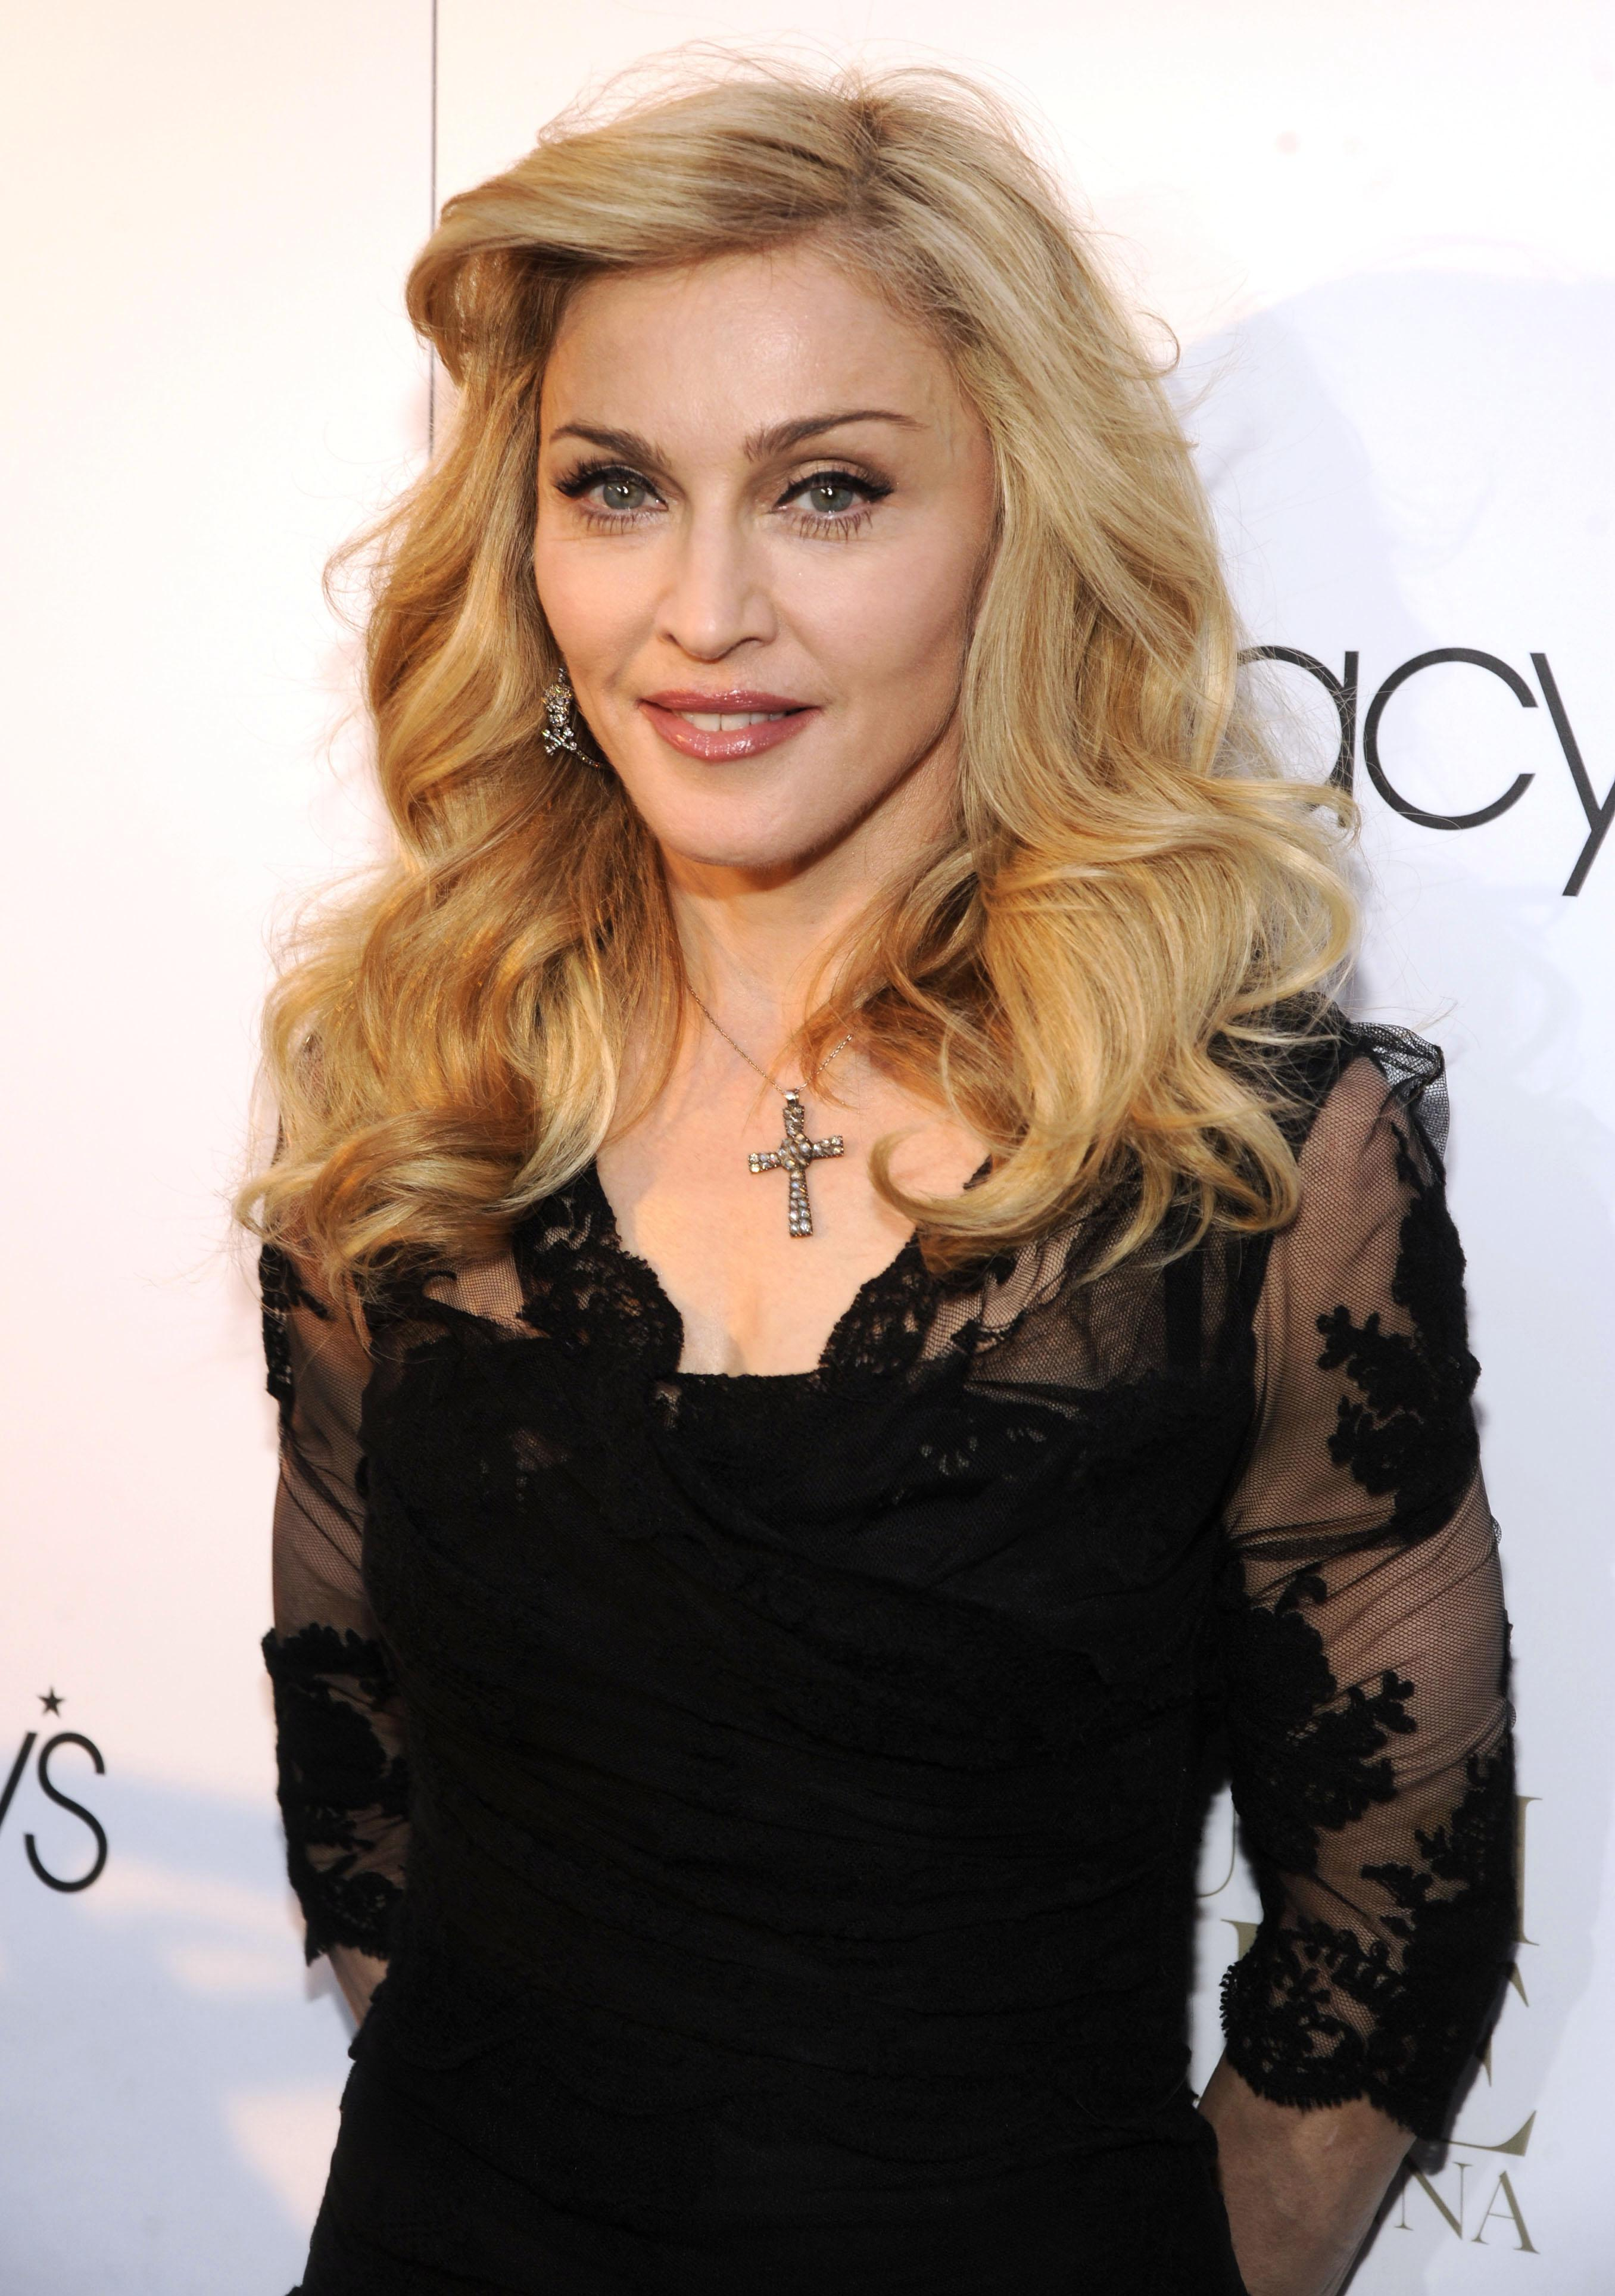 Madonna Launches Her First Signature Fragrance, Truth Or Dare By Madonna In NYC - Red Carpet